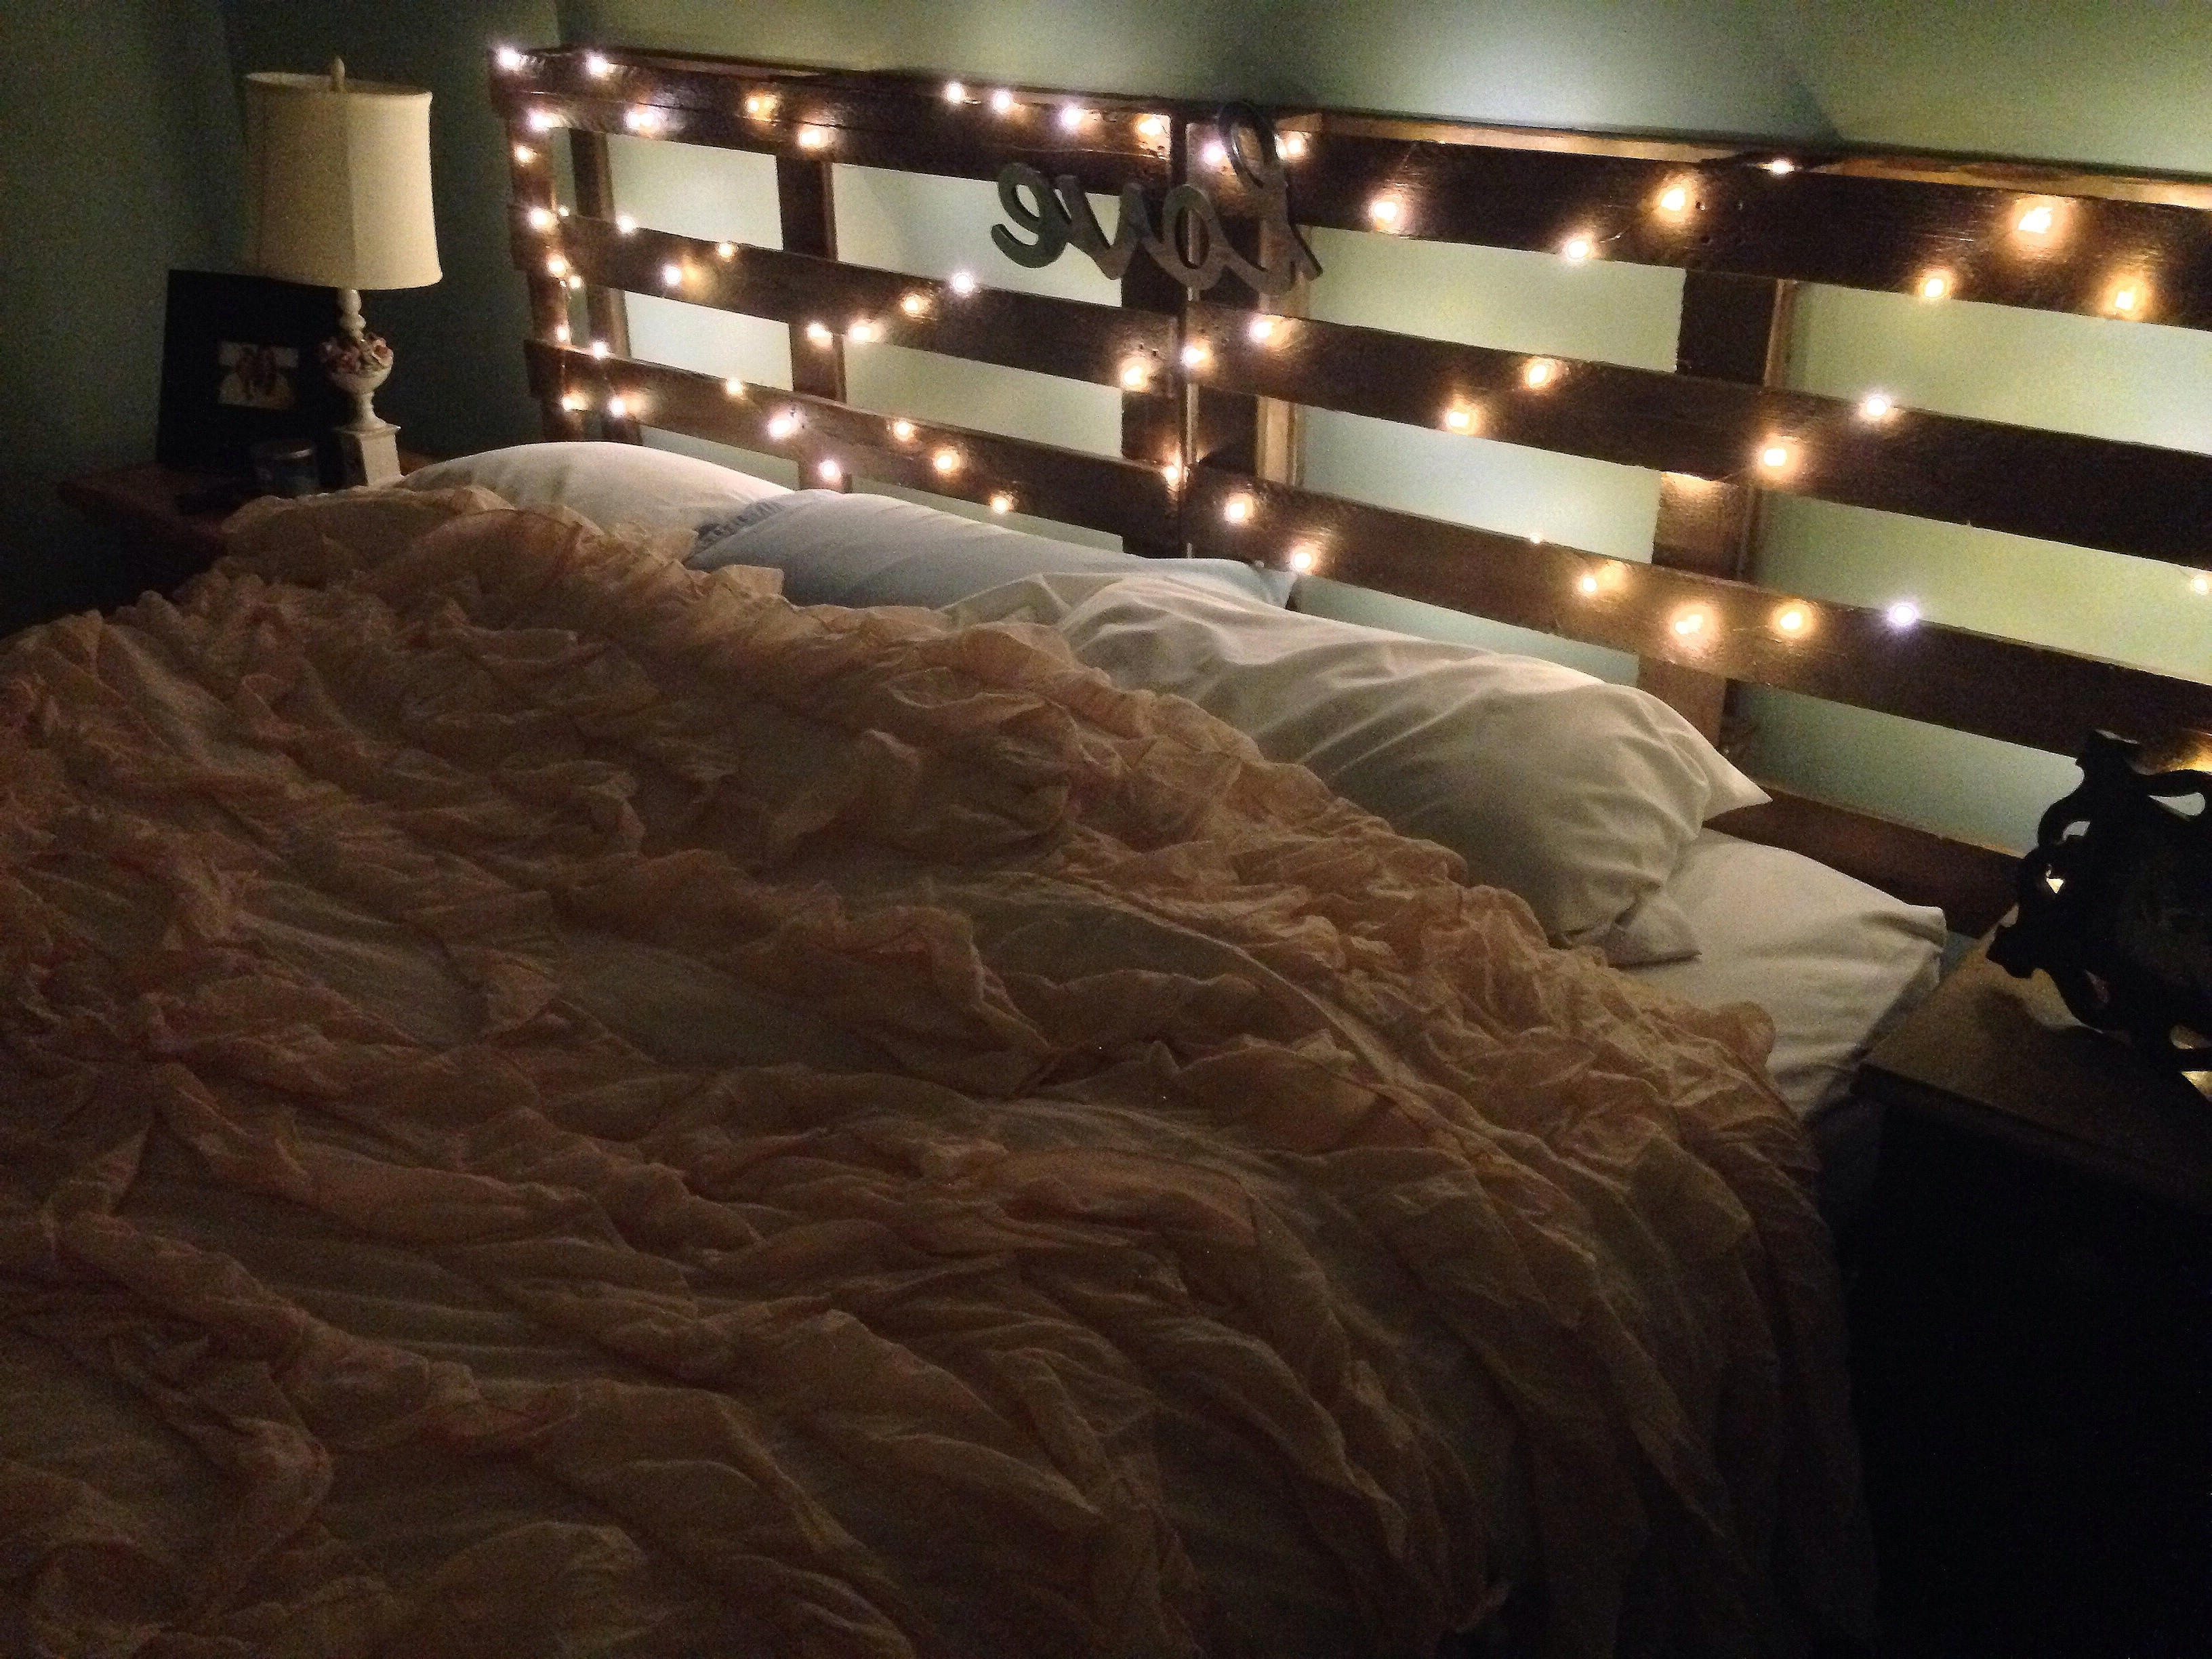 Widely Used Picture 2 Of 28 – Room Decor Lights Inspirational Bedroom How To Intended For Hanging Outdoor Lights Without Nails (View 20 of 20)